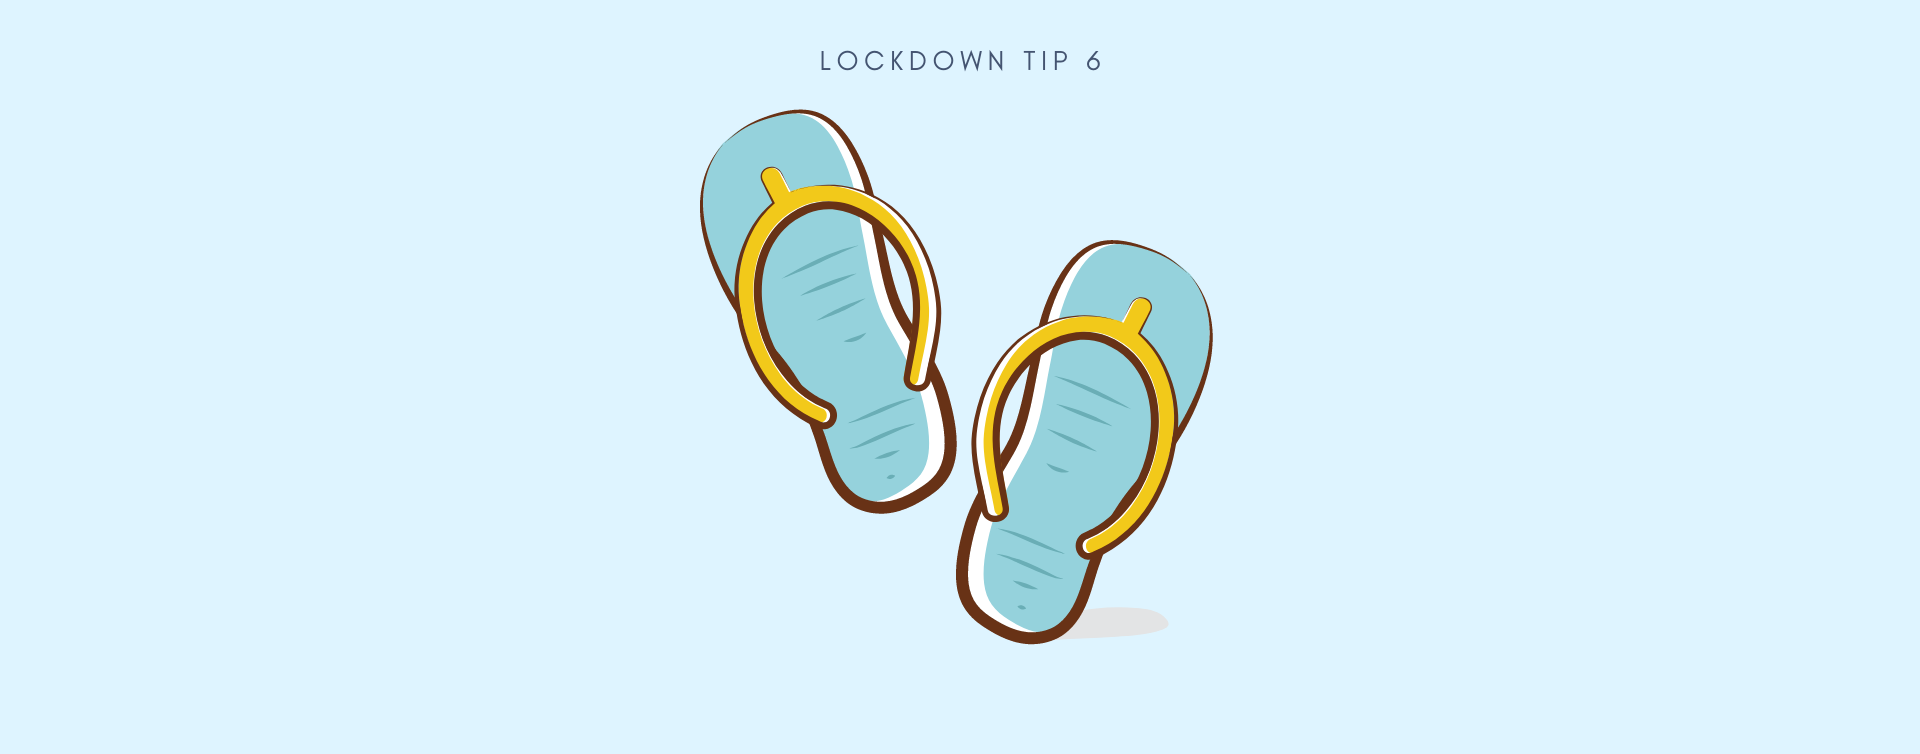 MCSA Lockdown Tip 6